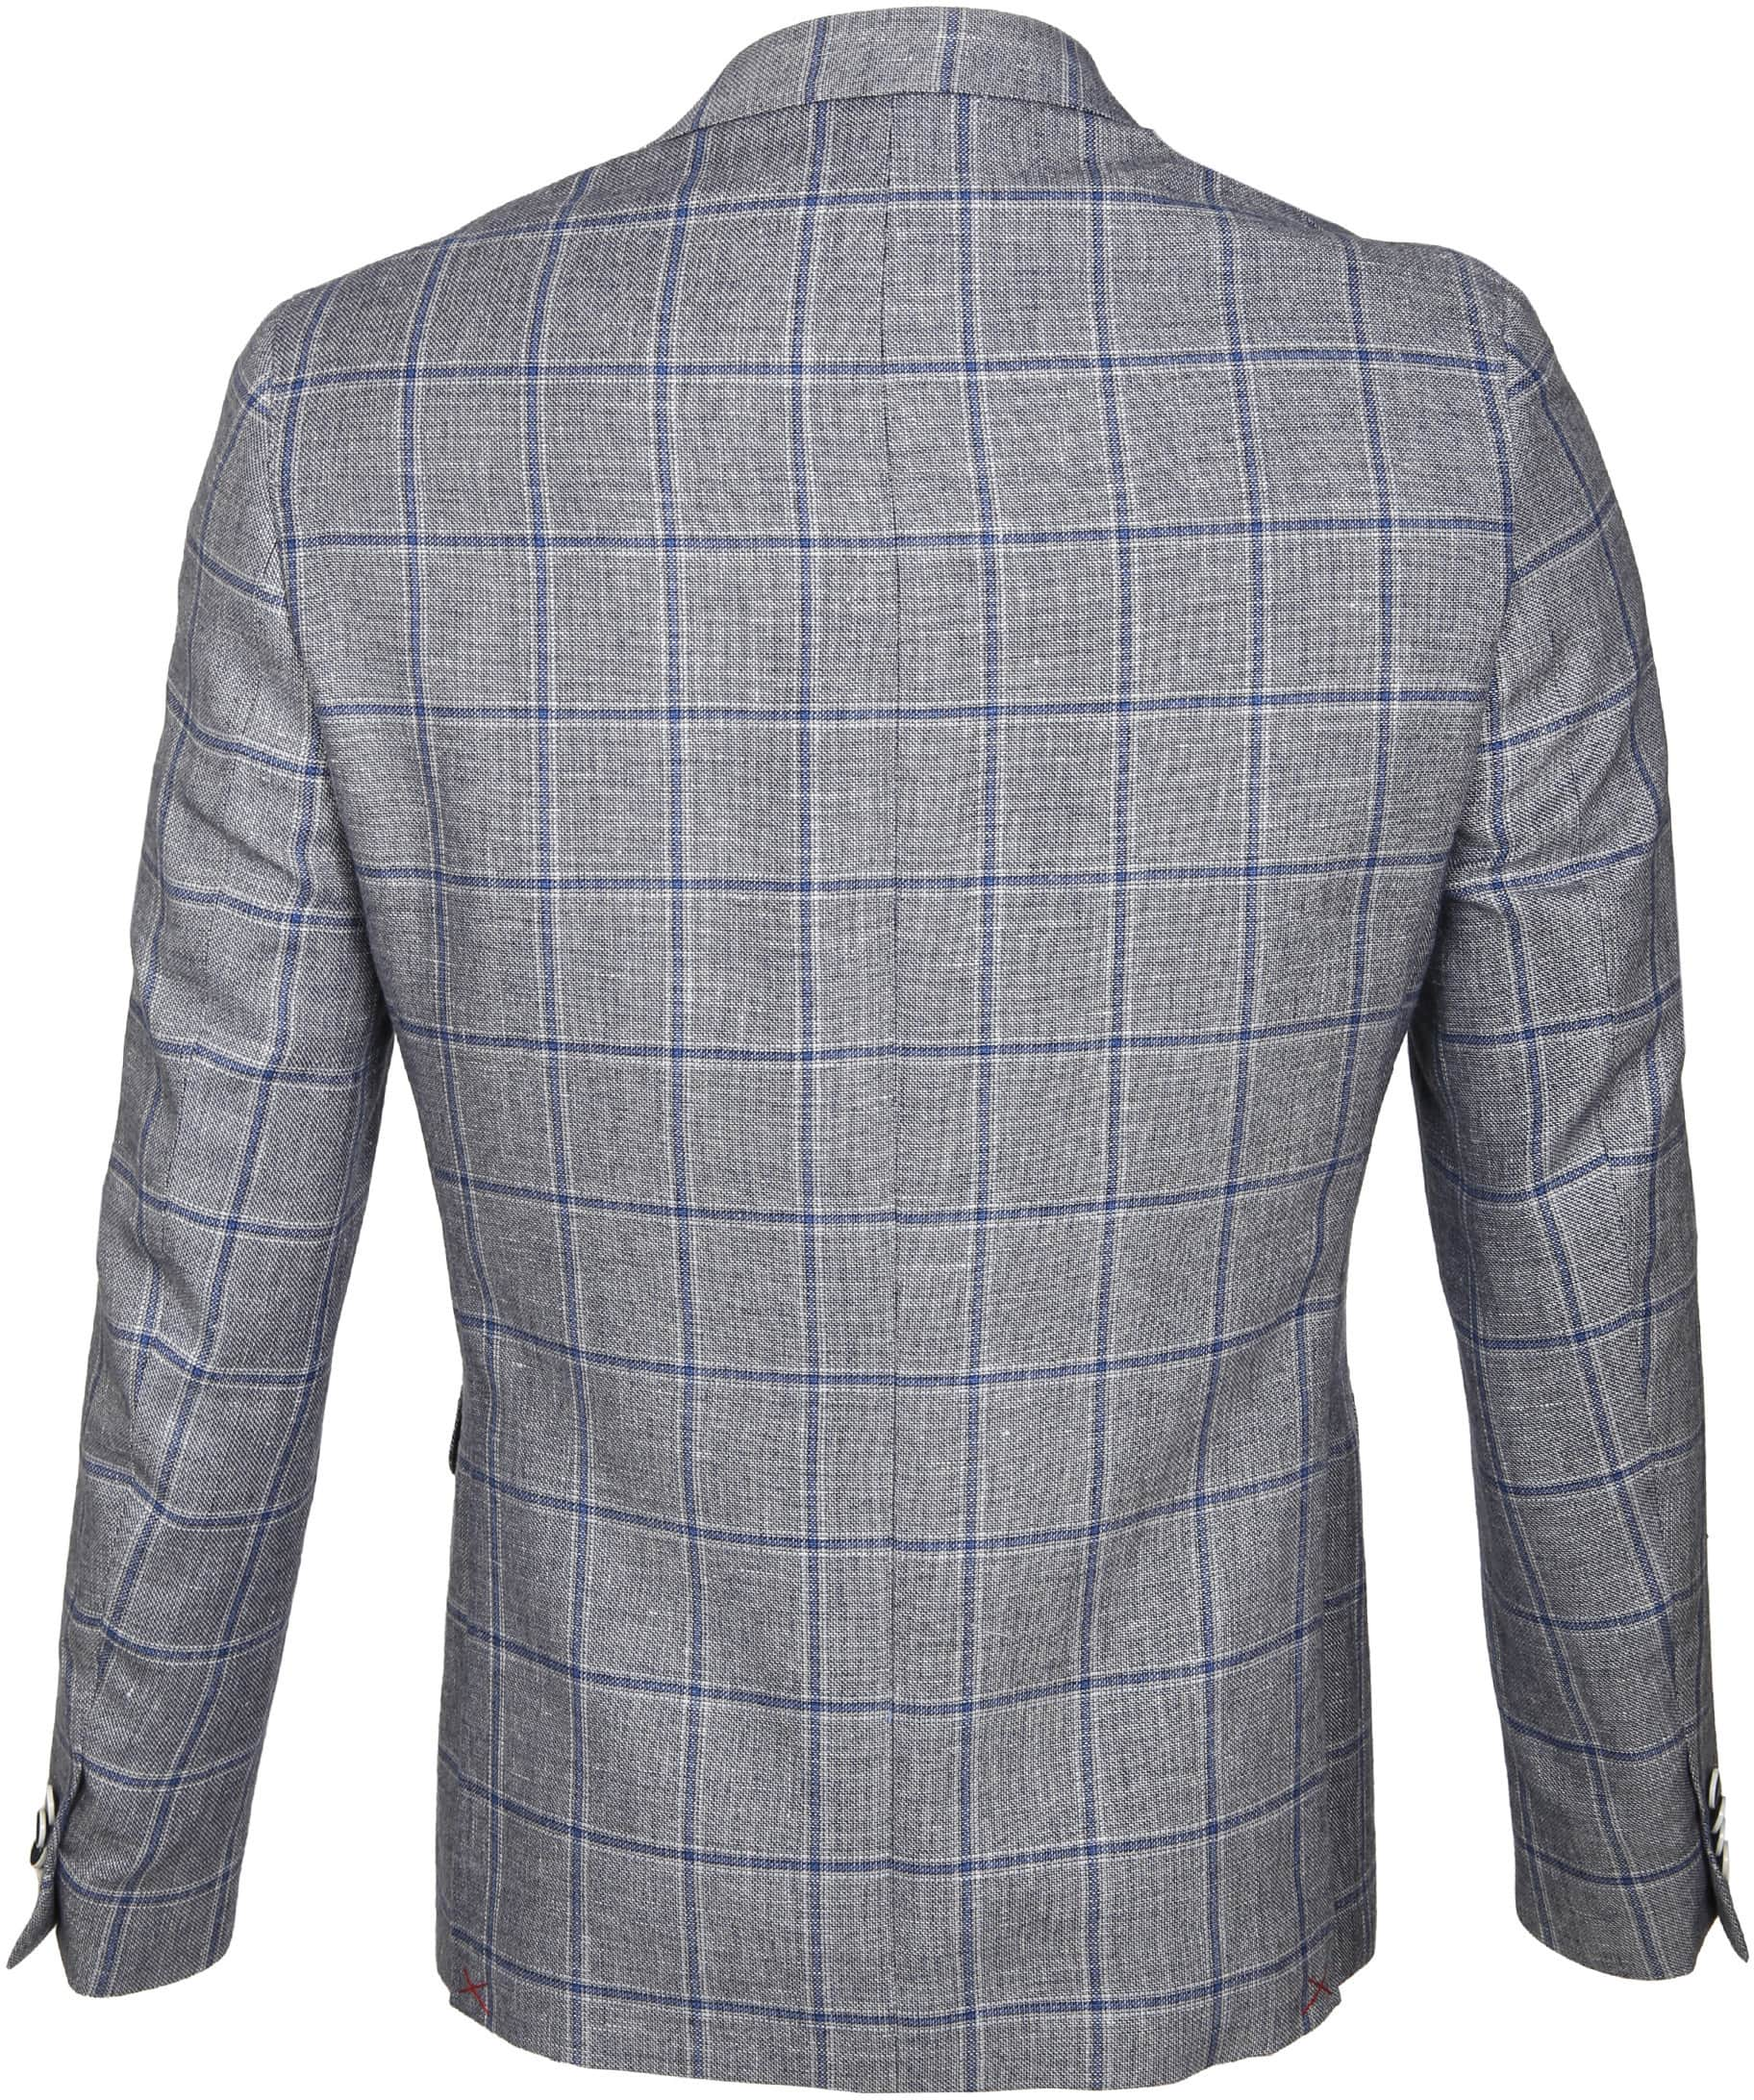 Suitable Blazer Menton Grau foto 3